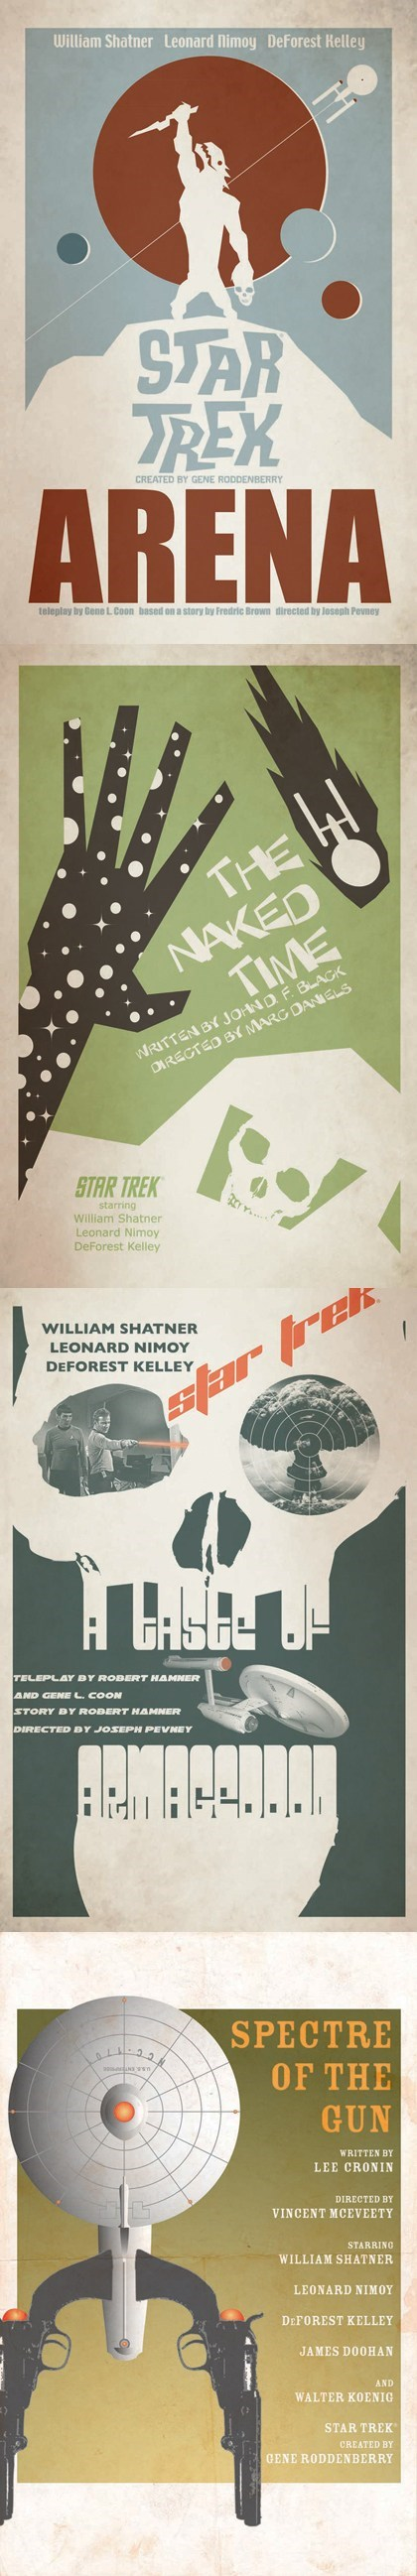 More Star Trek Episode Posters